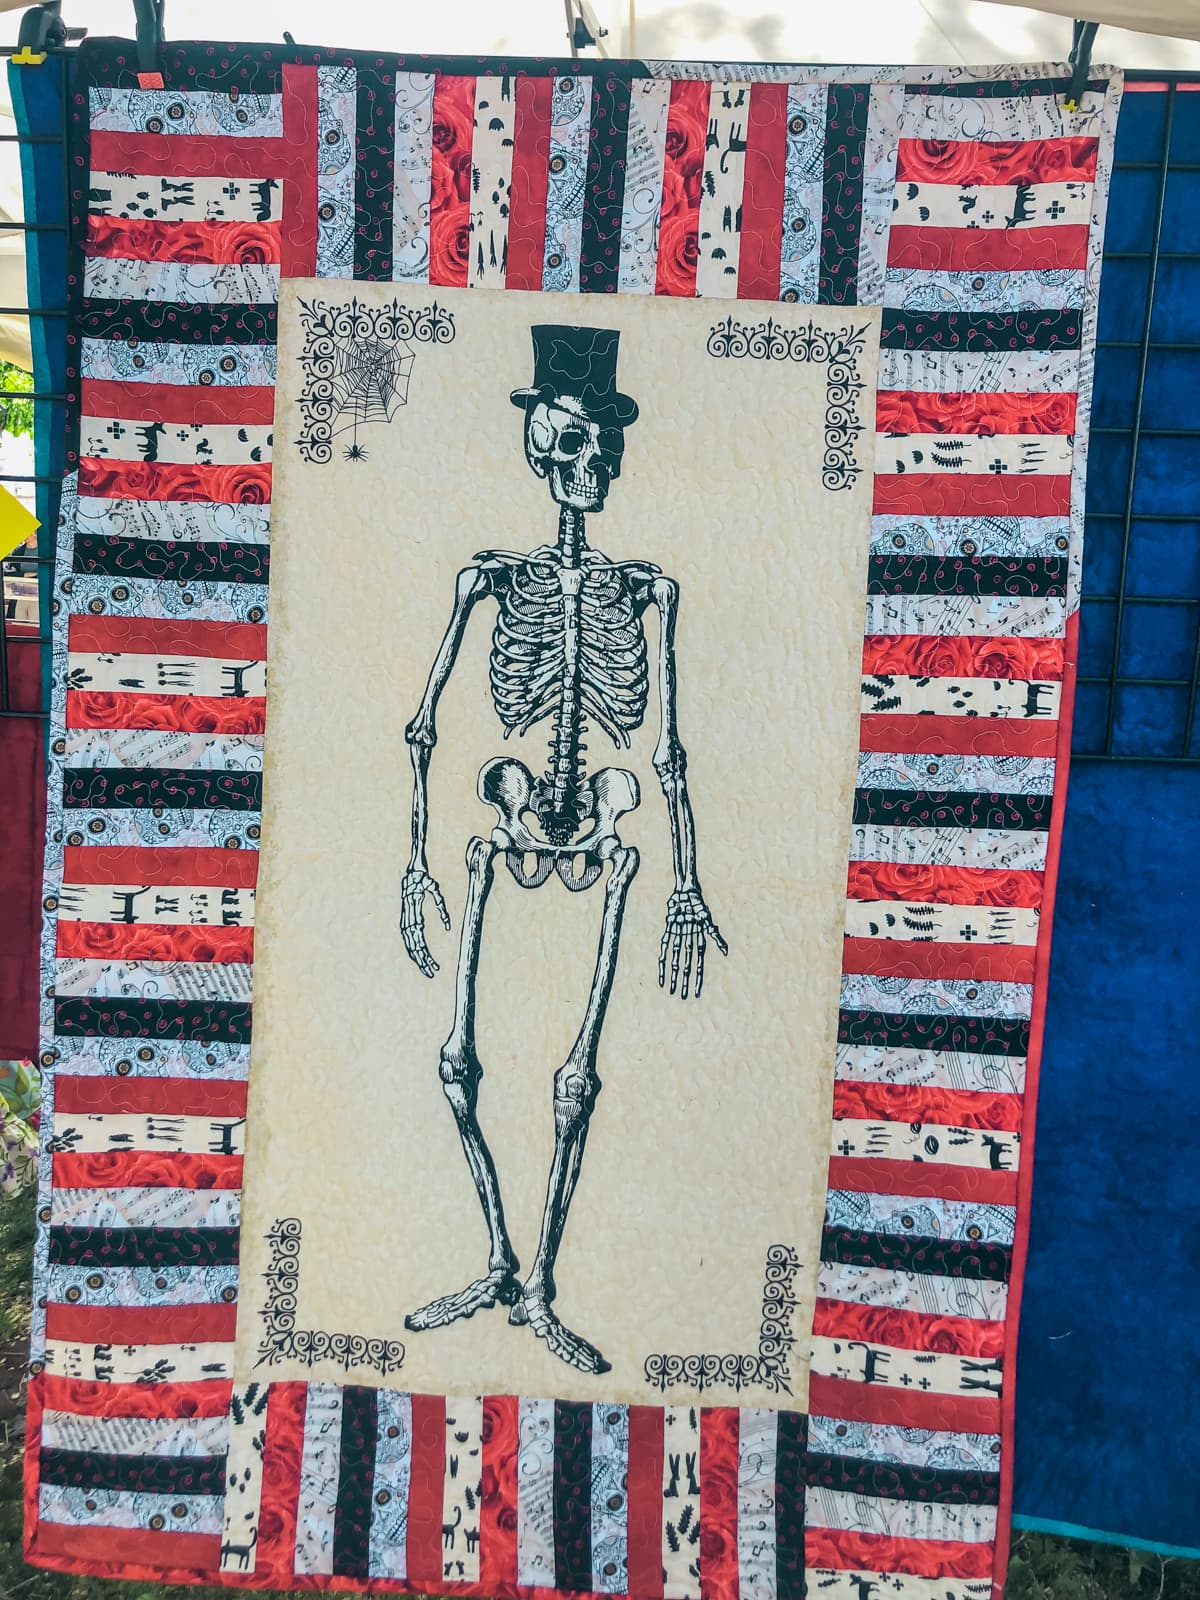 A blanket with a skeleton in a top hat on it